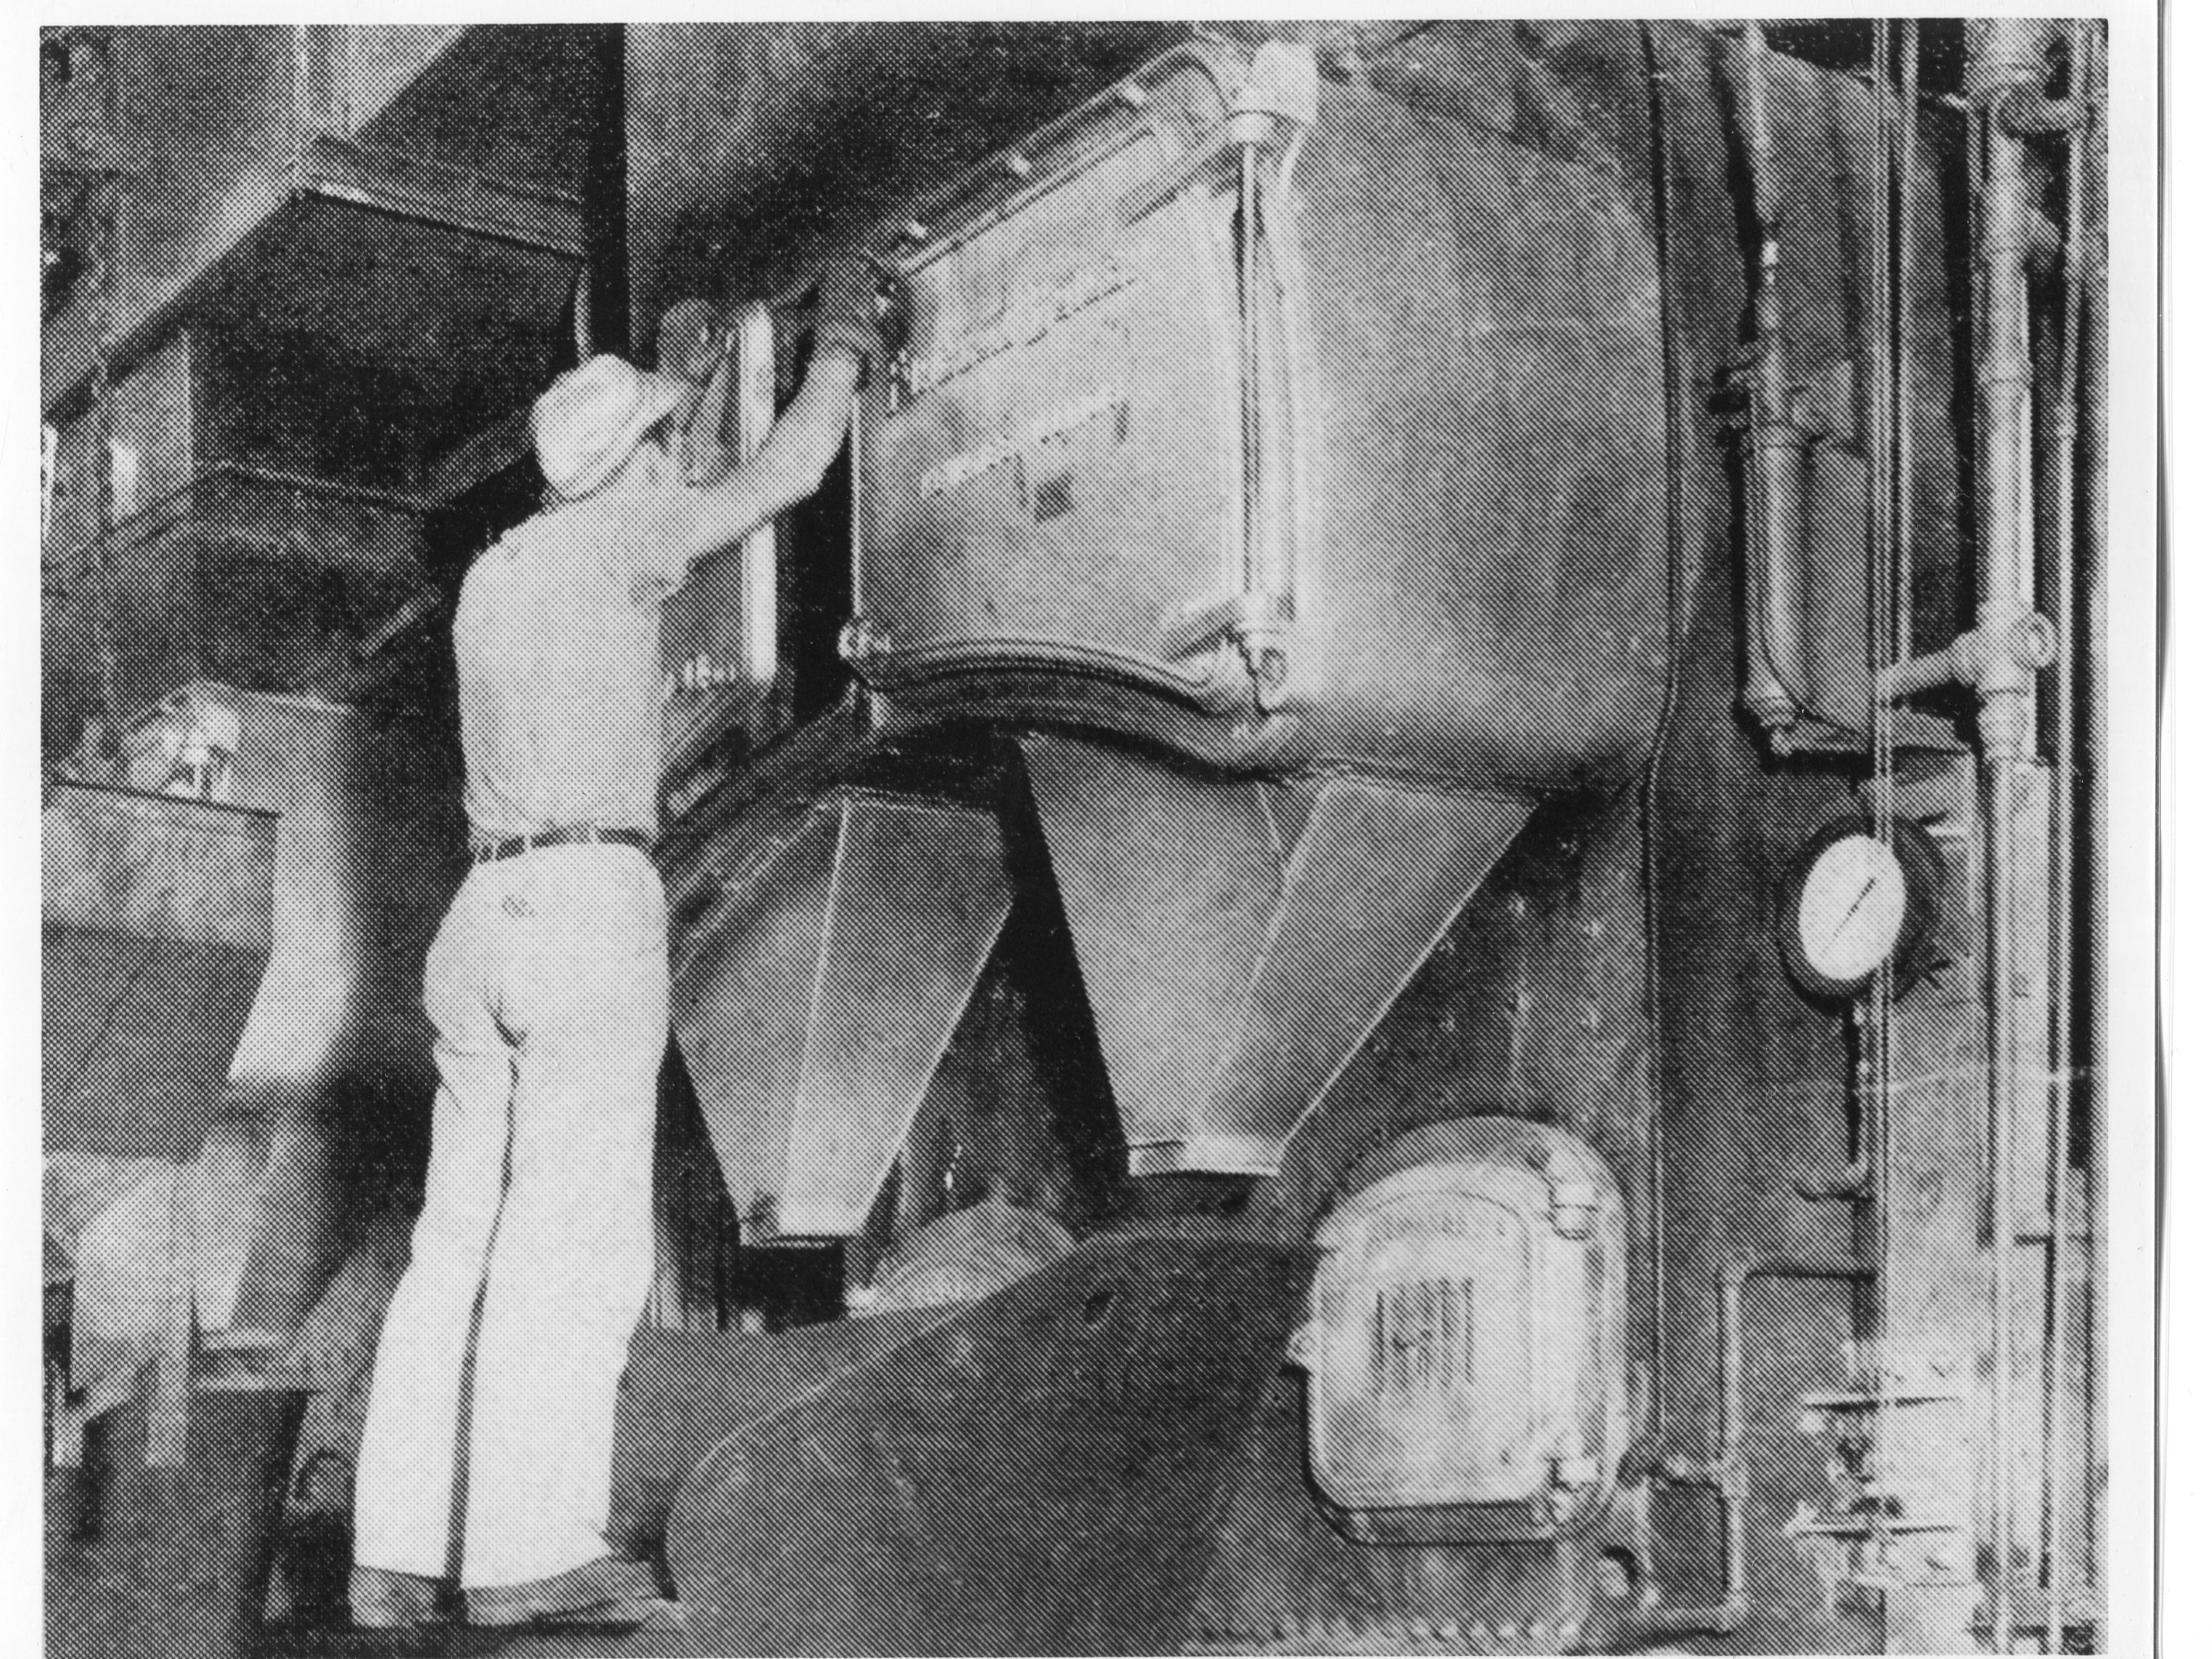 Photo of the furnace in operation.